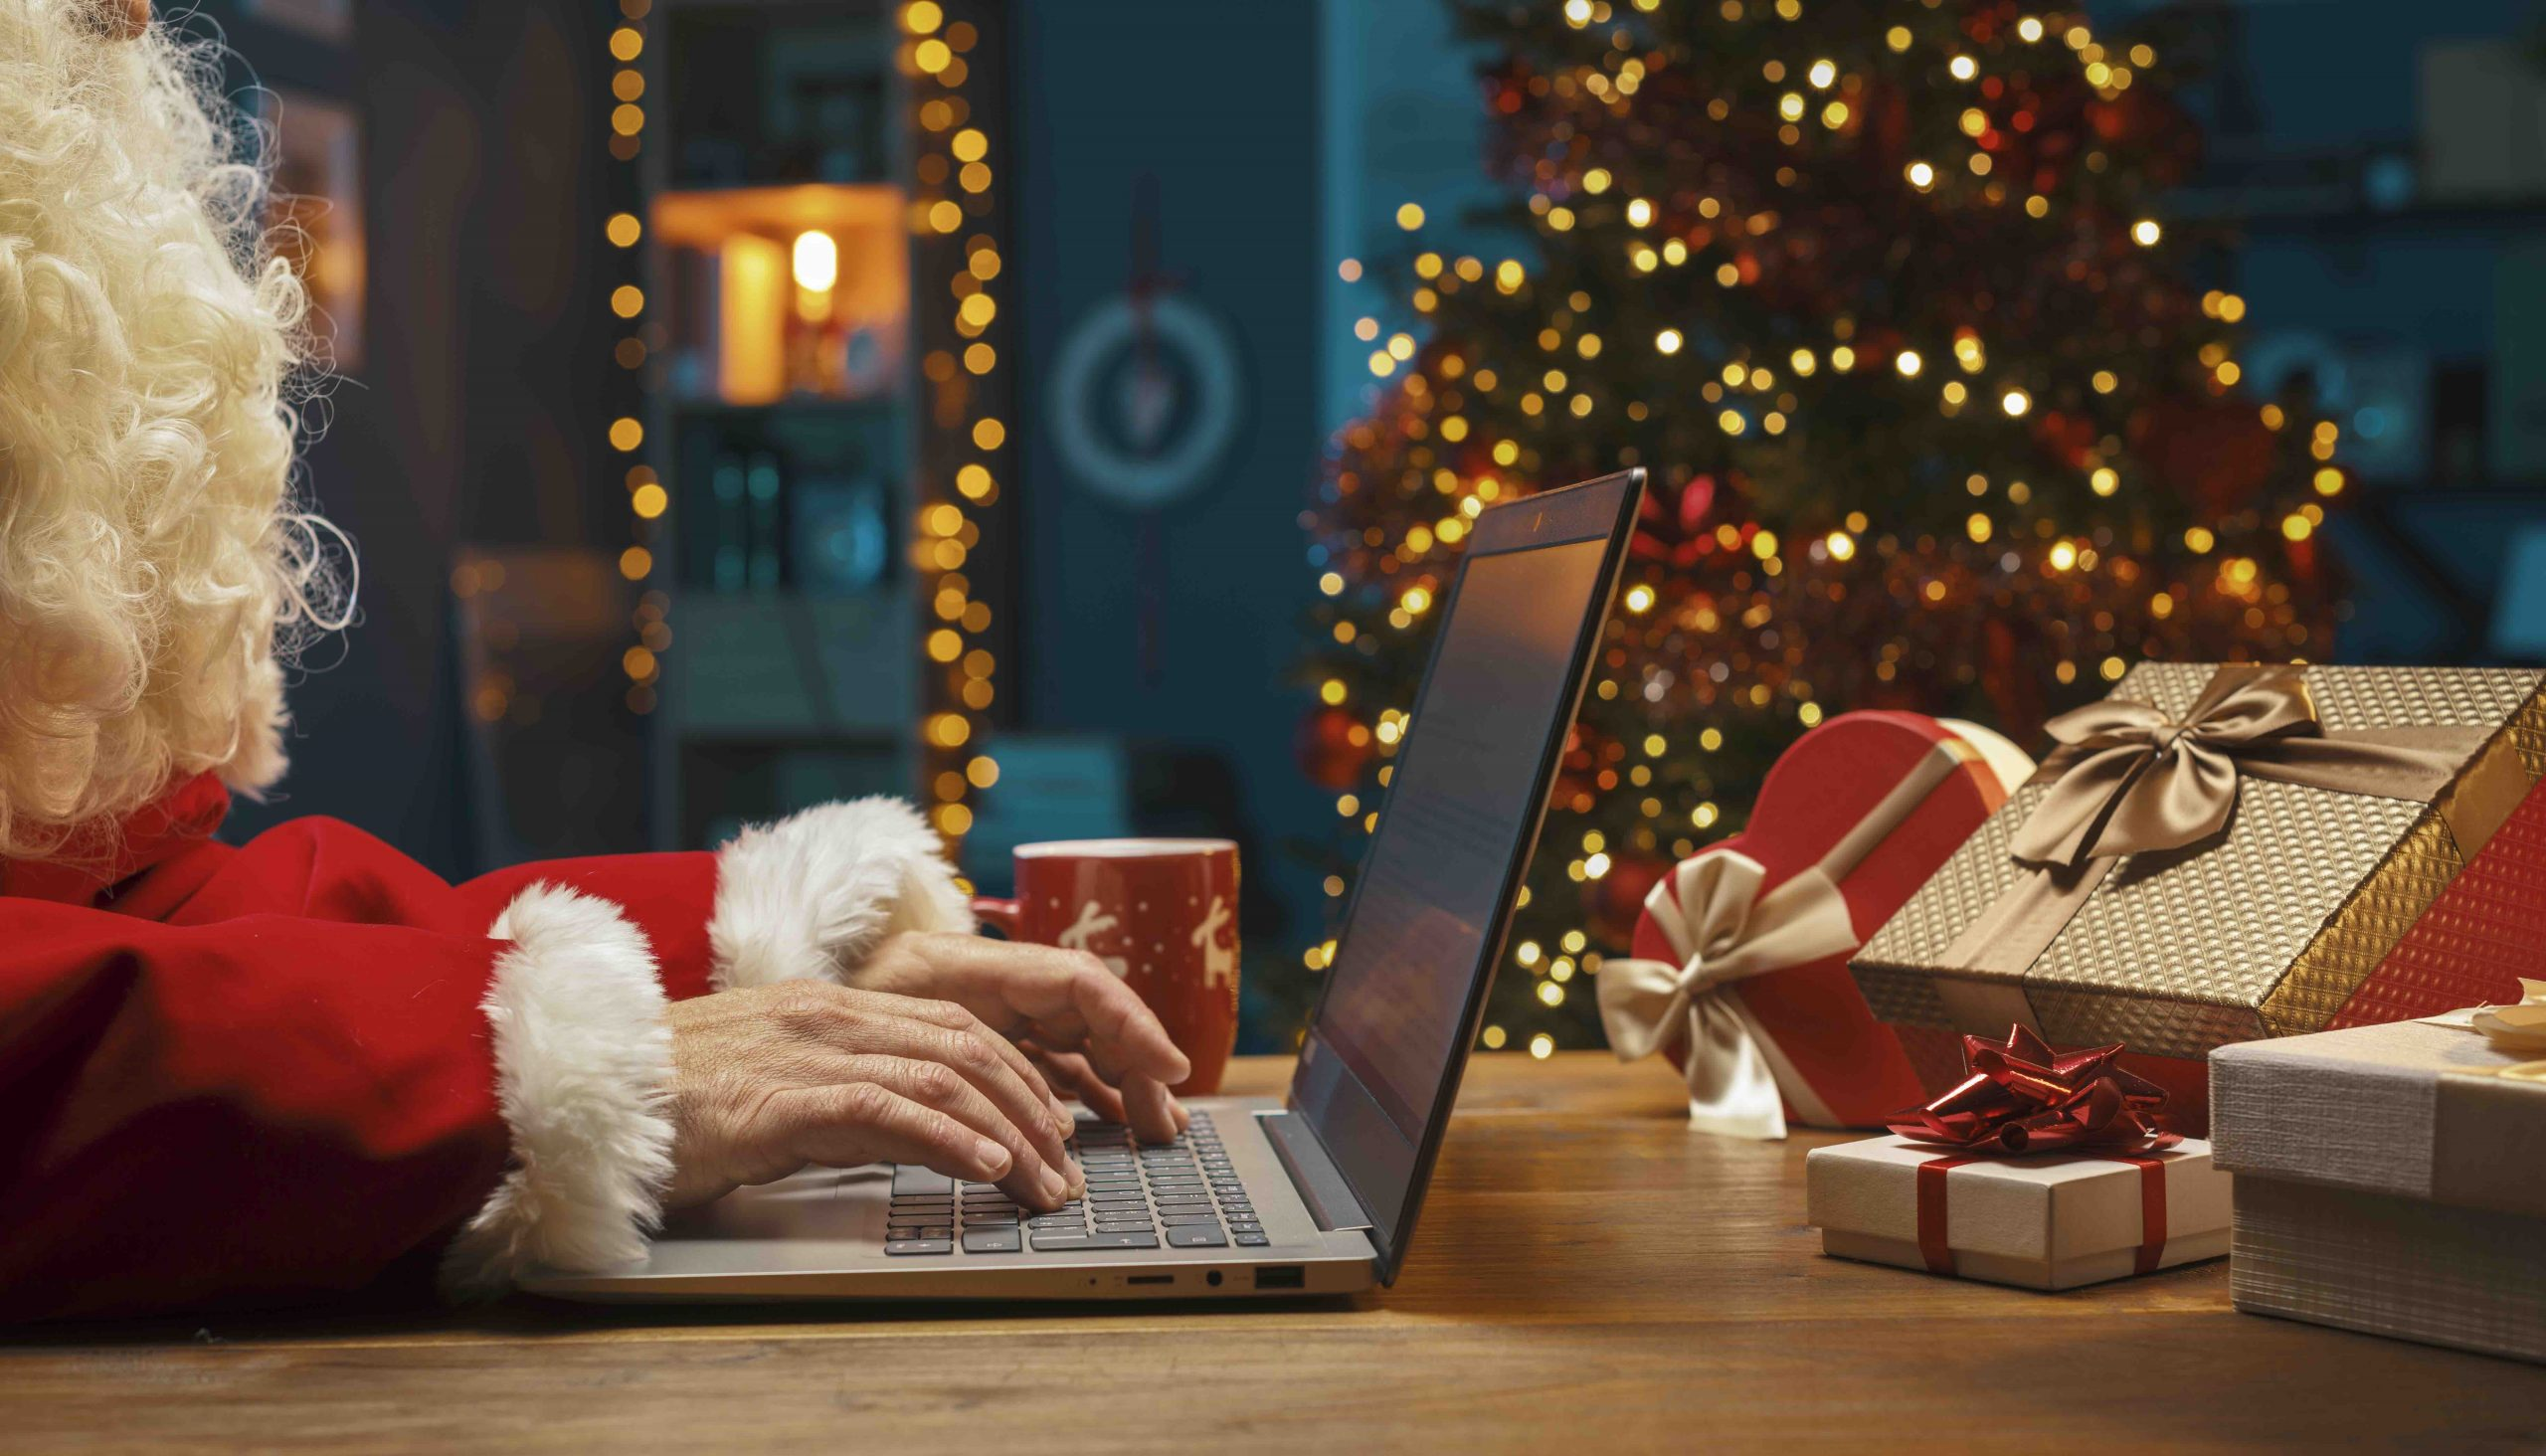 Spruce Up Your Website With Holiday Cheer